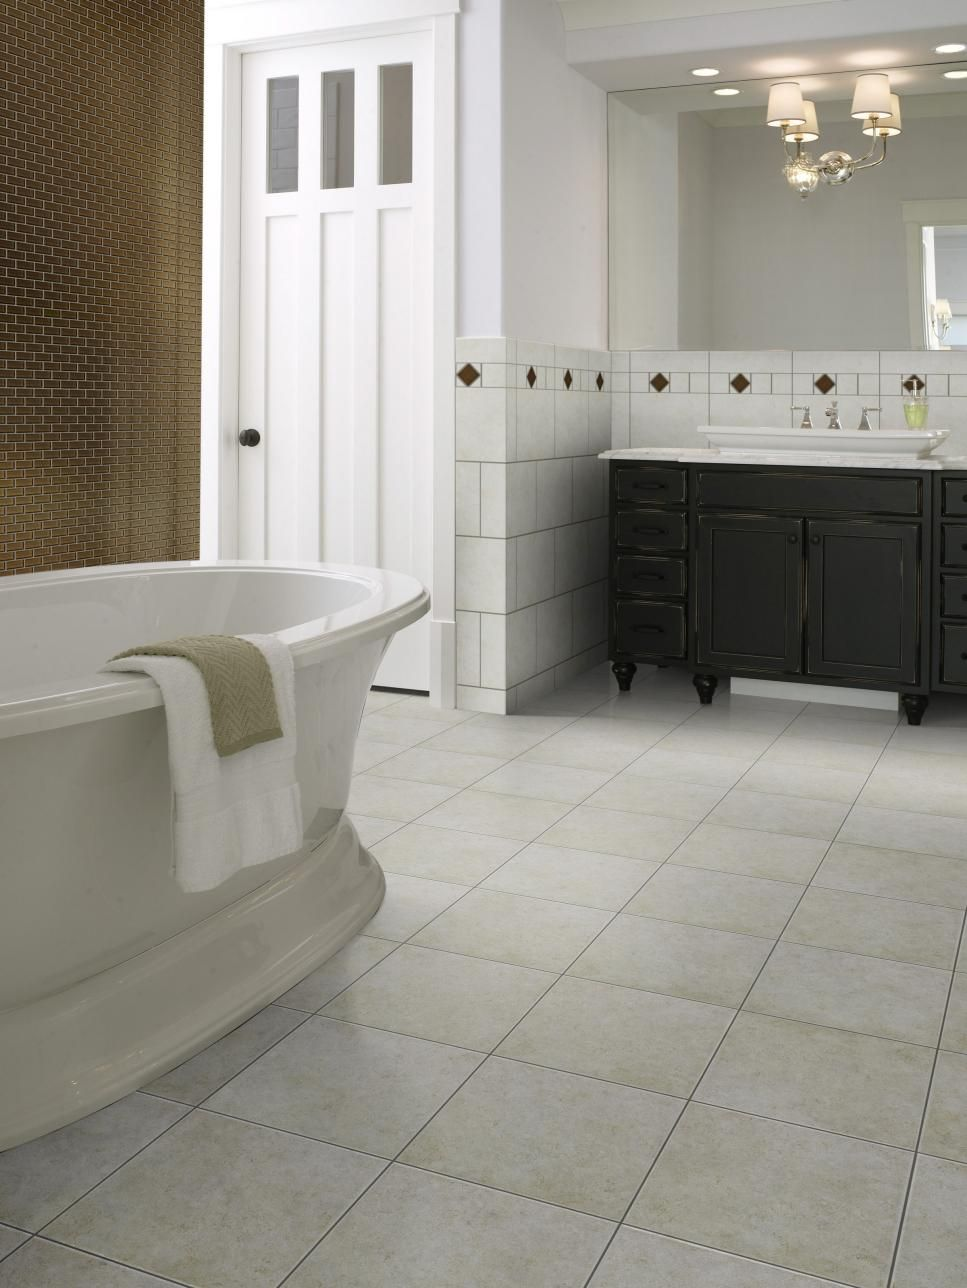 Ceramic Tile Bathroom Floors | Bathroom tiling, Tile patterns and ...